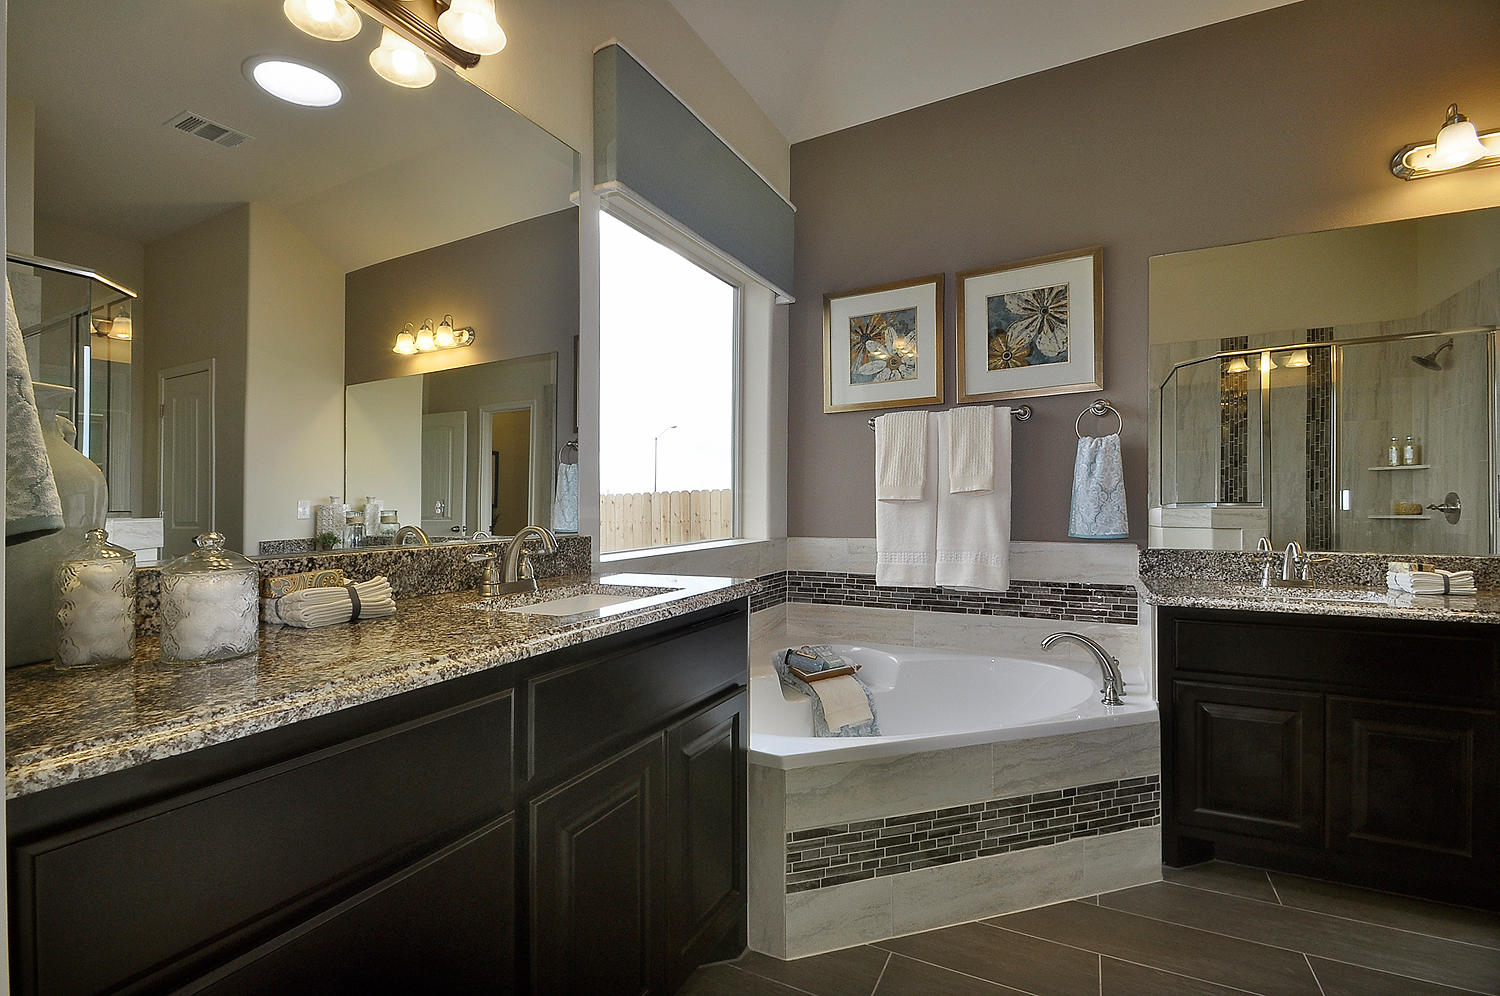 Burrows Cabinets master bath vanities in Espresso with corner tub